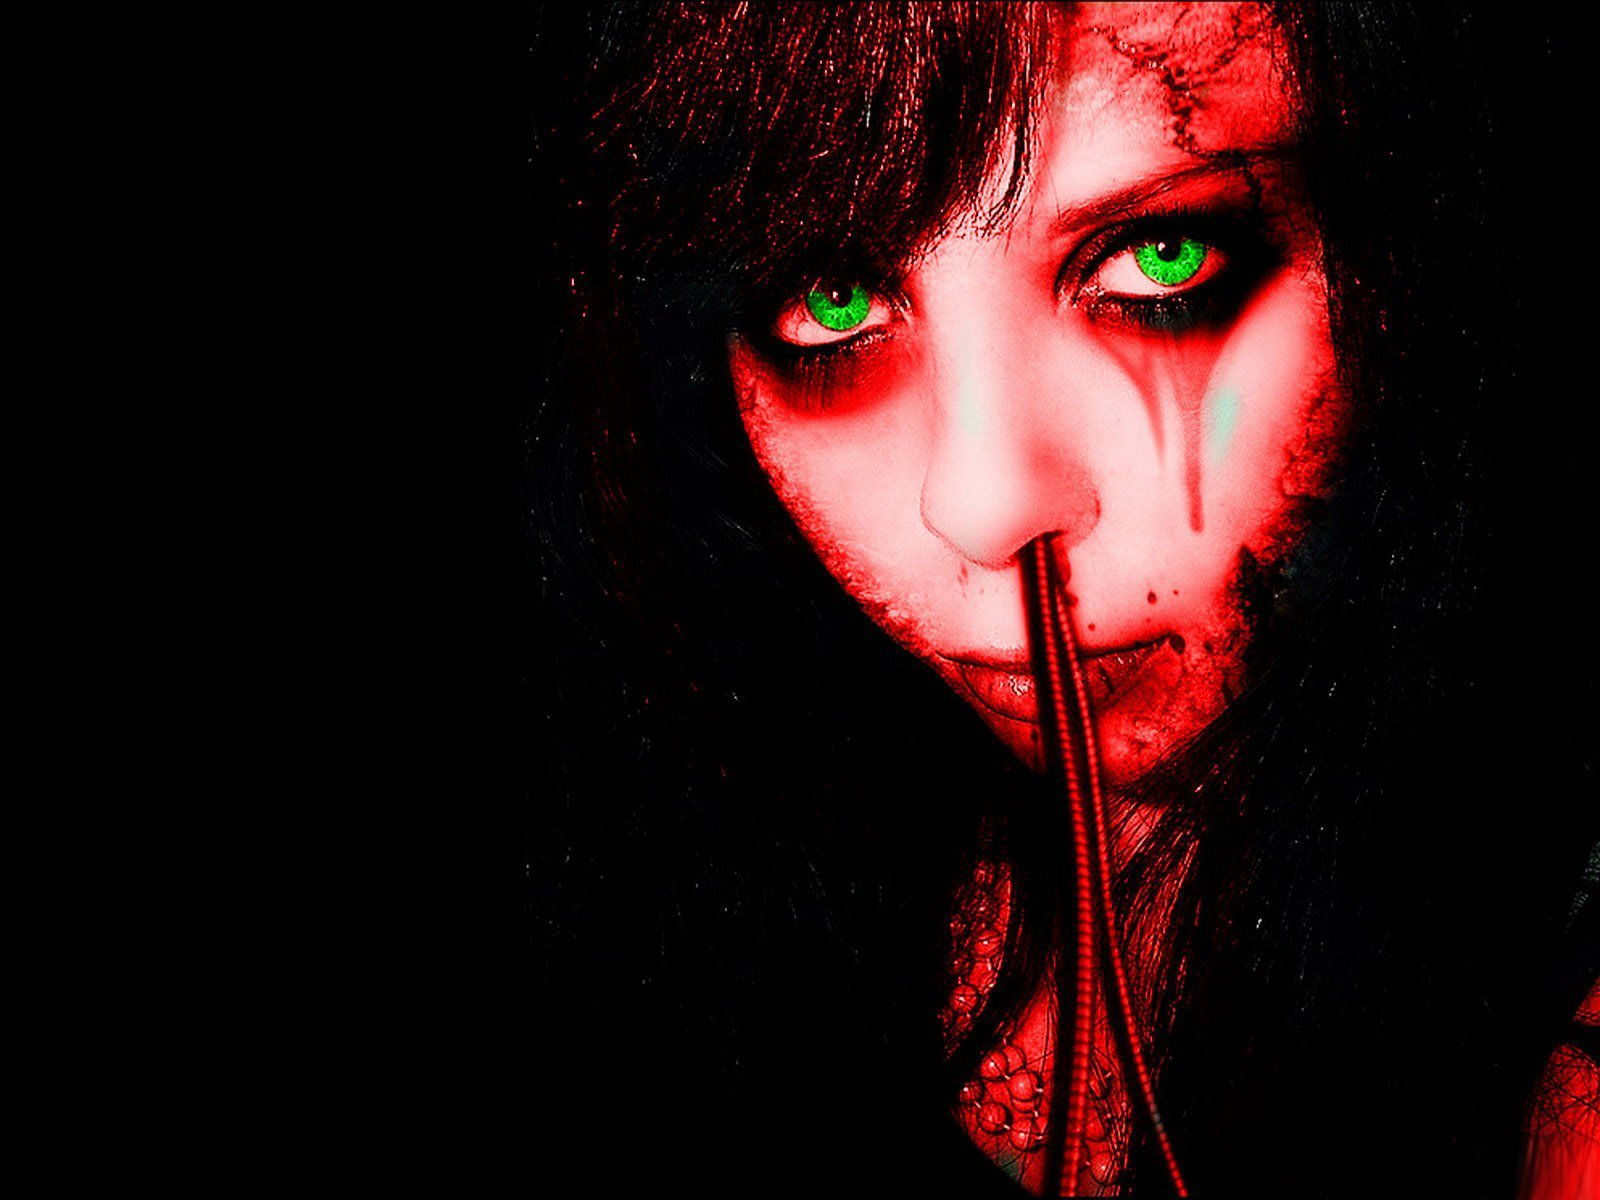 gothic horor wallpapers Scary Wallpapers 1600x1200